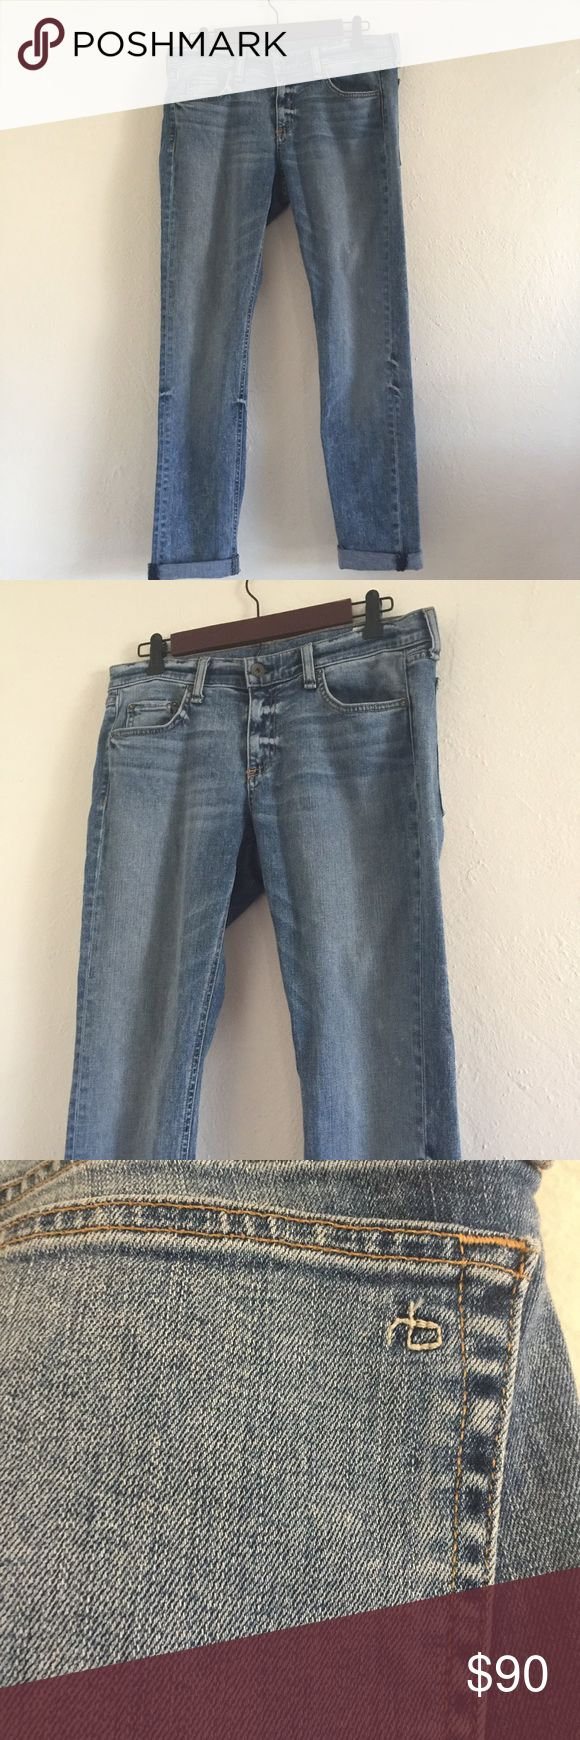 Rag and Bone Dre Acid Blue 28 jeans like New Excellent preloved condition! Size 28. Style w1590k510acb color acid blue cut 15188 98%cotton 2% polyurethane 16in flat lay rise 9in inseam 30.5 ankle 6in flat any questions please ask! rag & bone Jeans Boyfriend